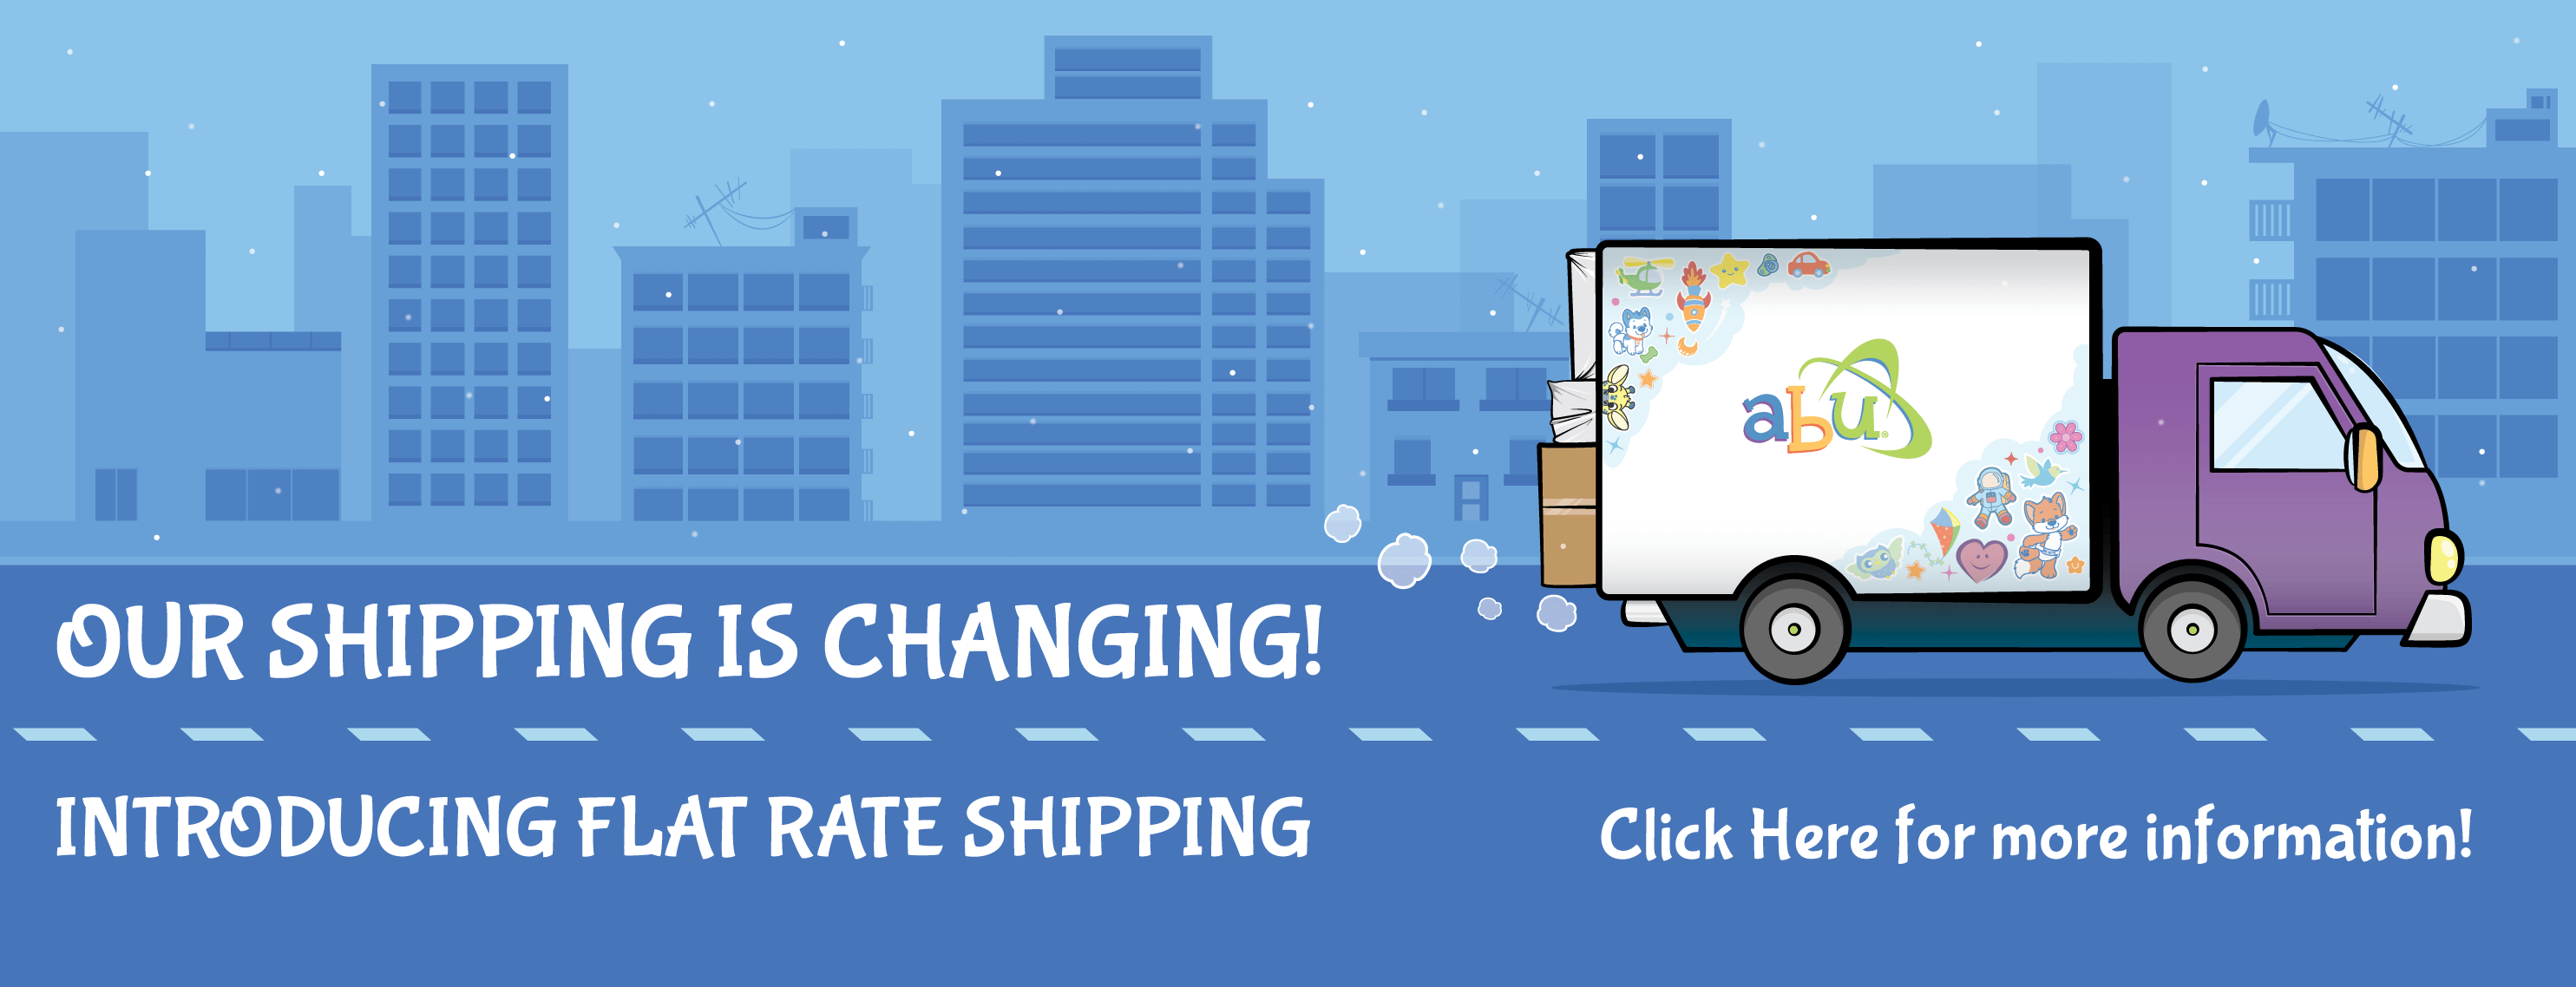 Flat Shipping Rate Banner